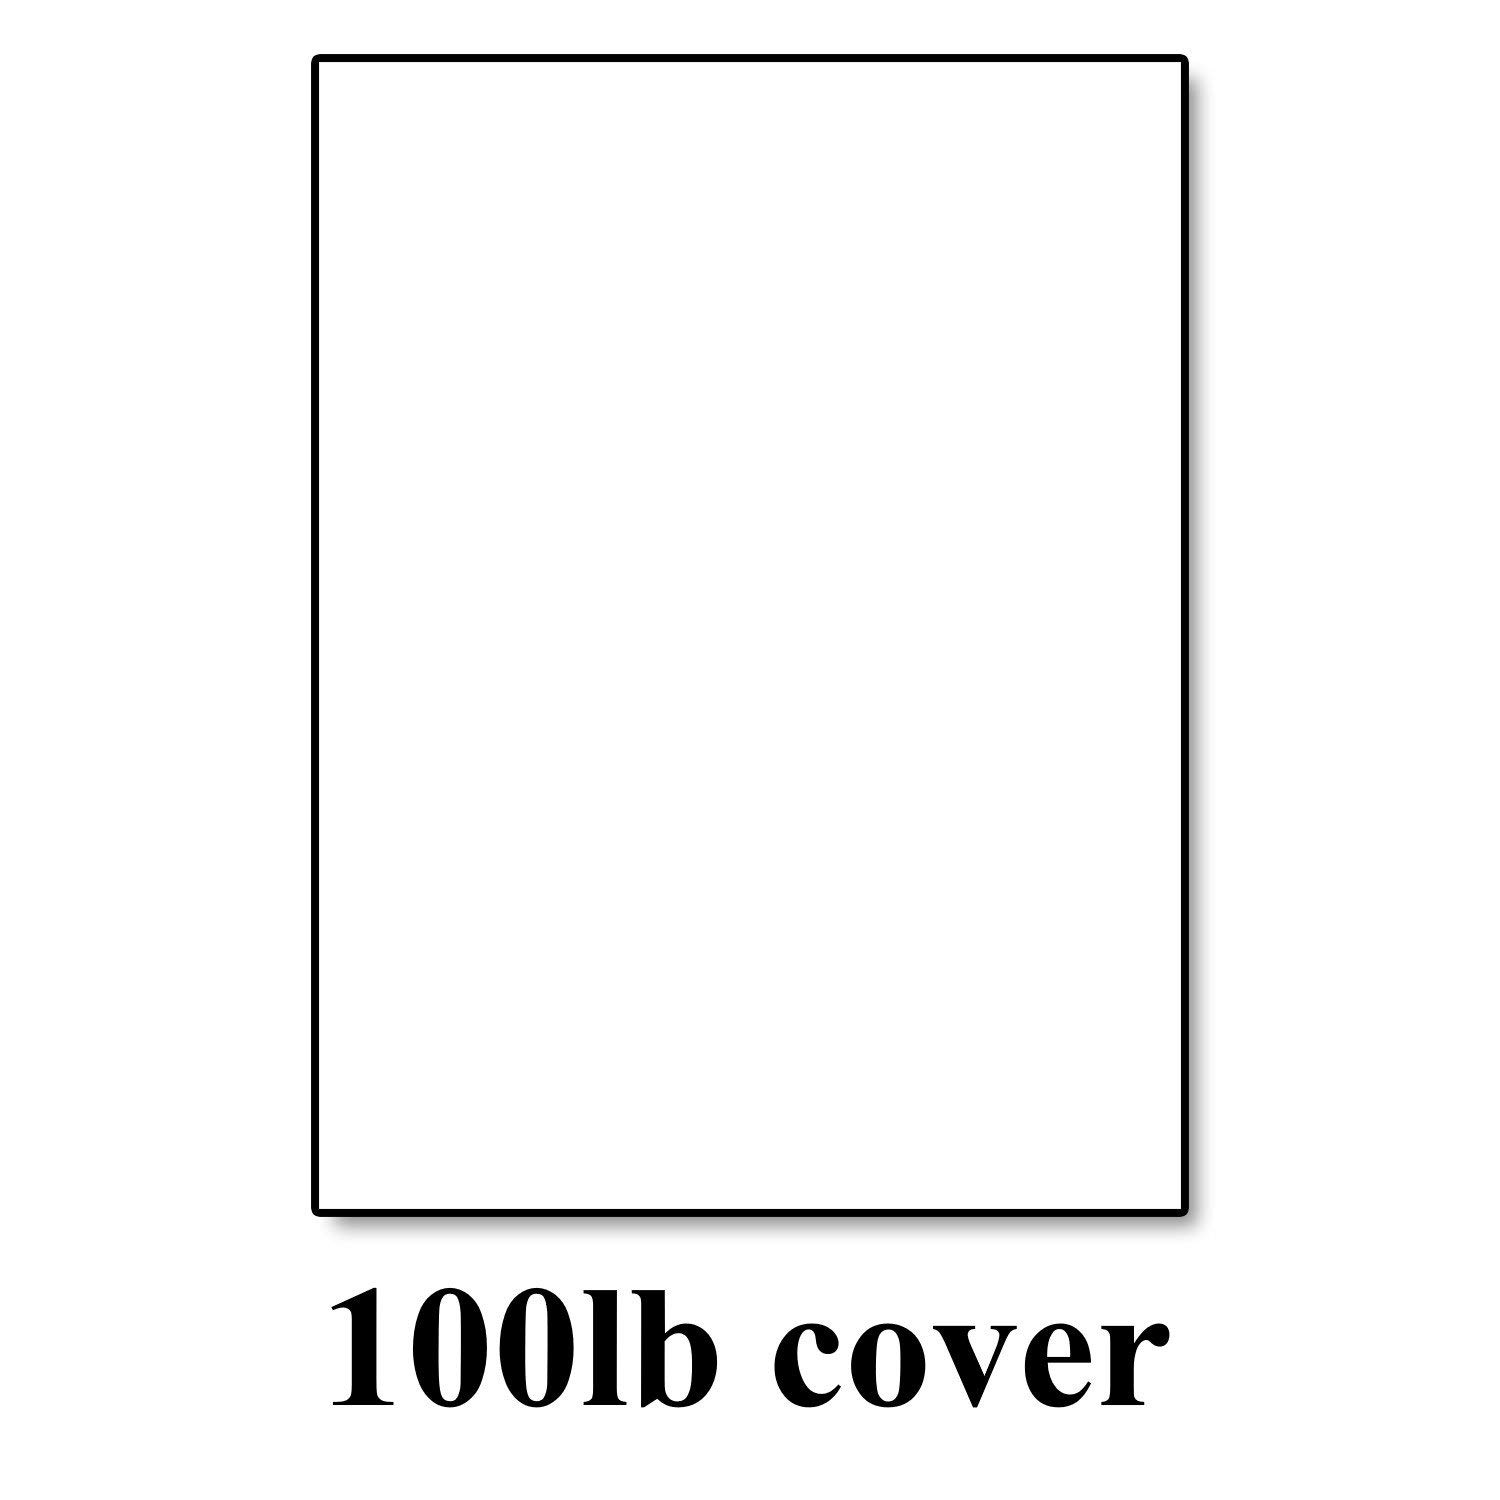 "Hamilco White Cardstock Thick Paper - 8 1/2 x 11"" Blank Heavy Weight 100 lb Cover Card Stock - for Brochure Award and Stationery Printing (50 Pack)"